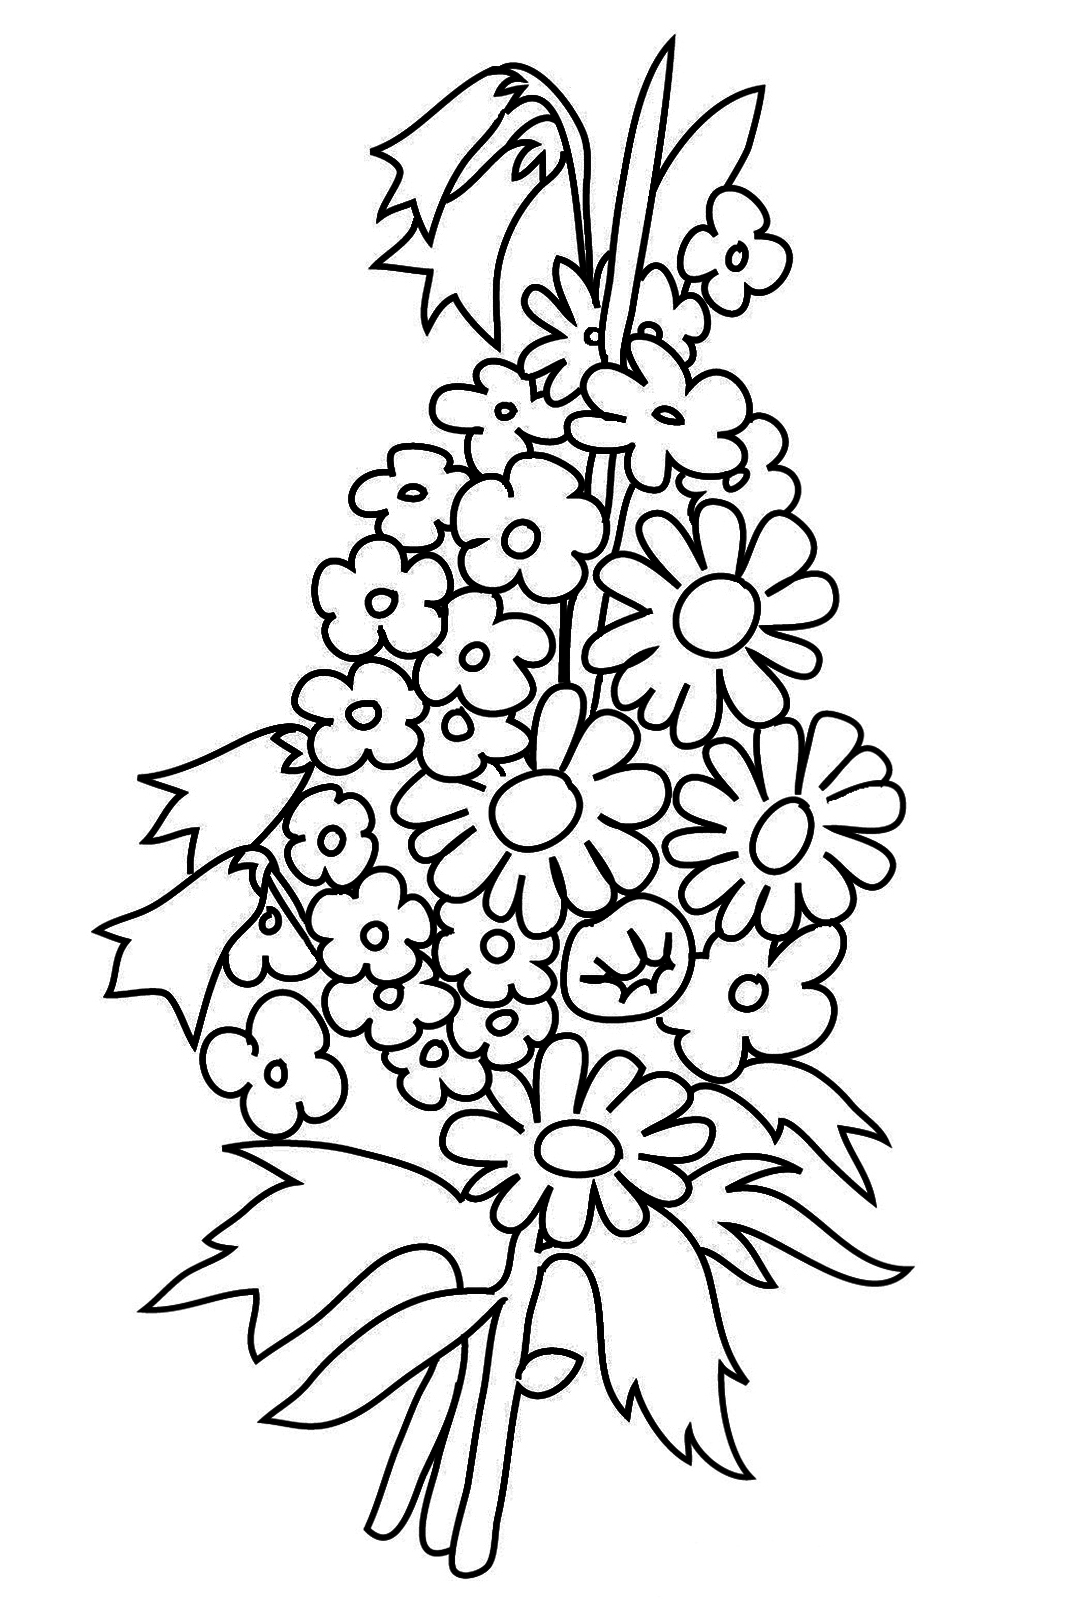 color page flower free easy to print flower coloring pages tulamama flower page color